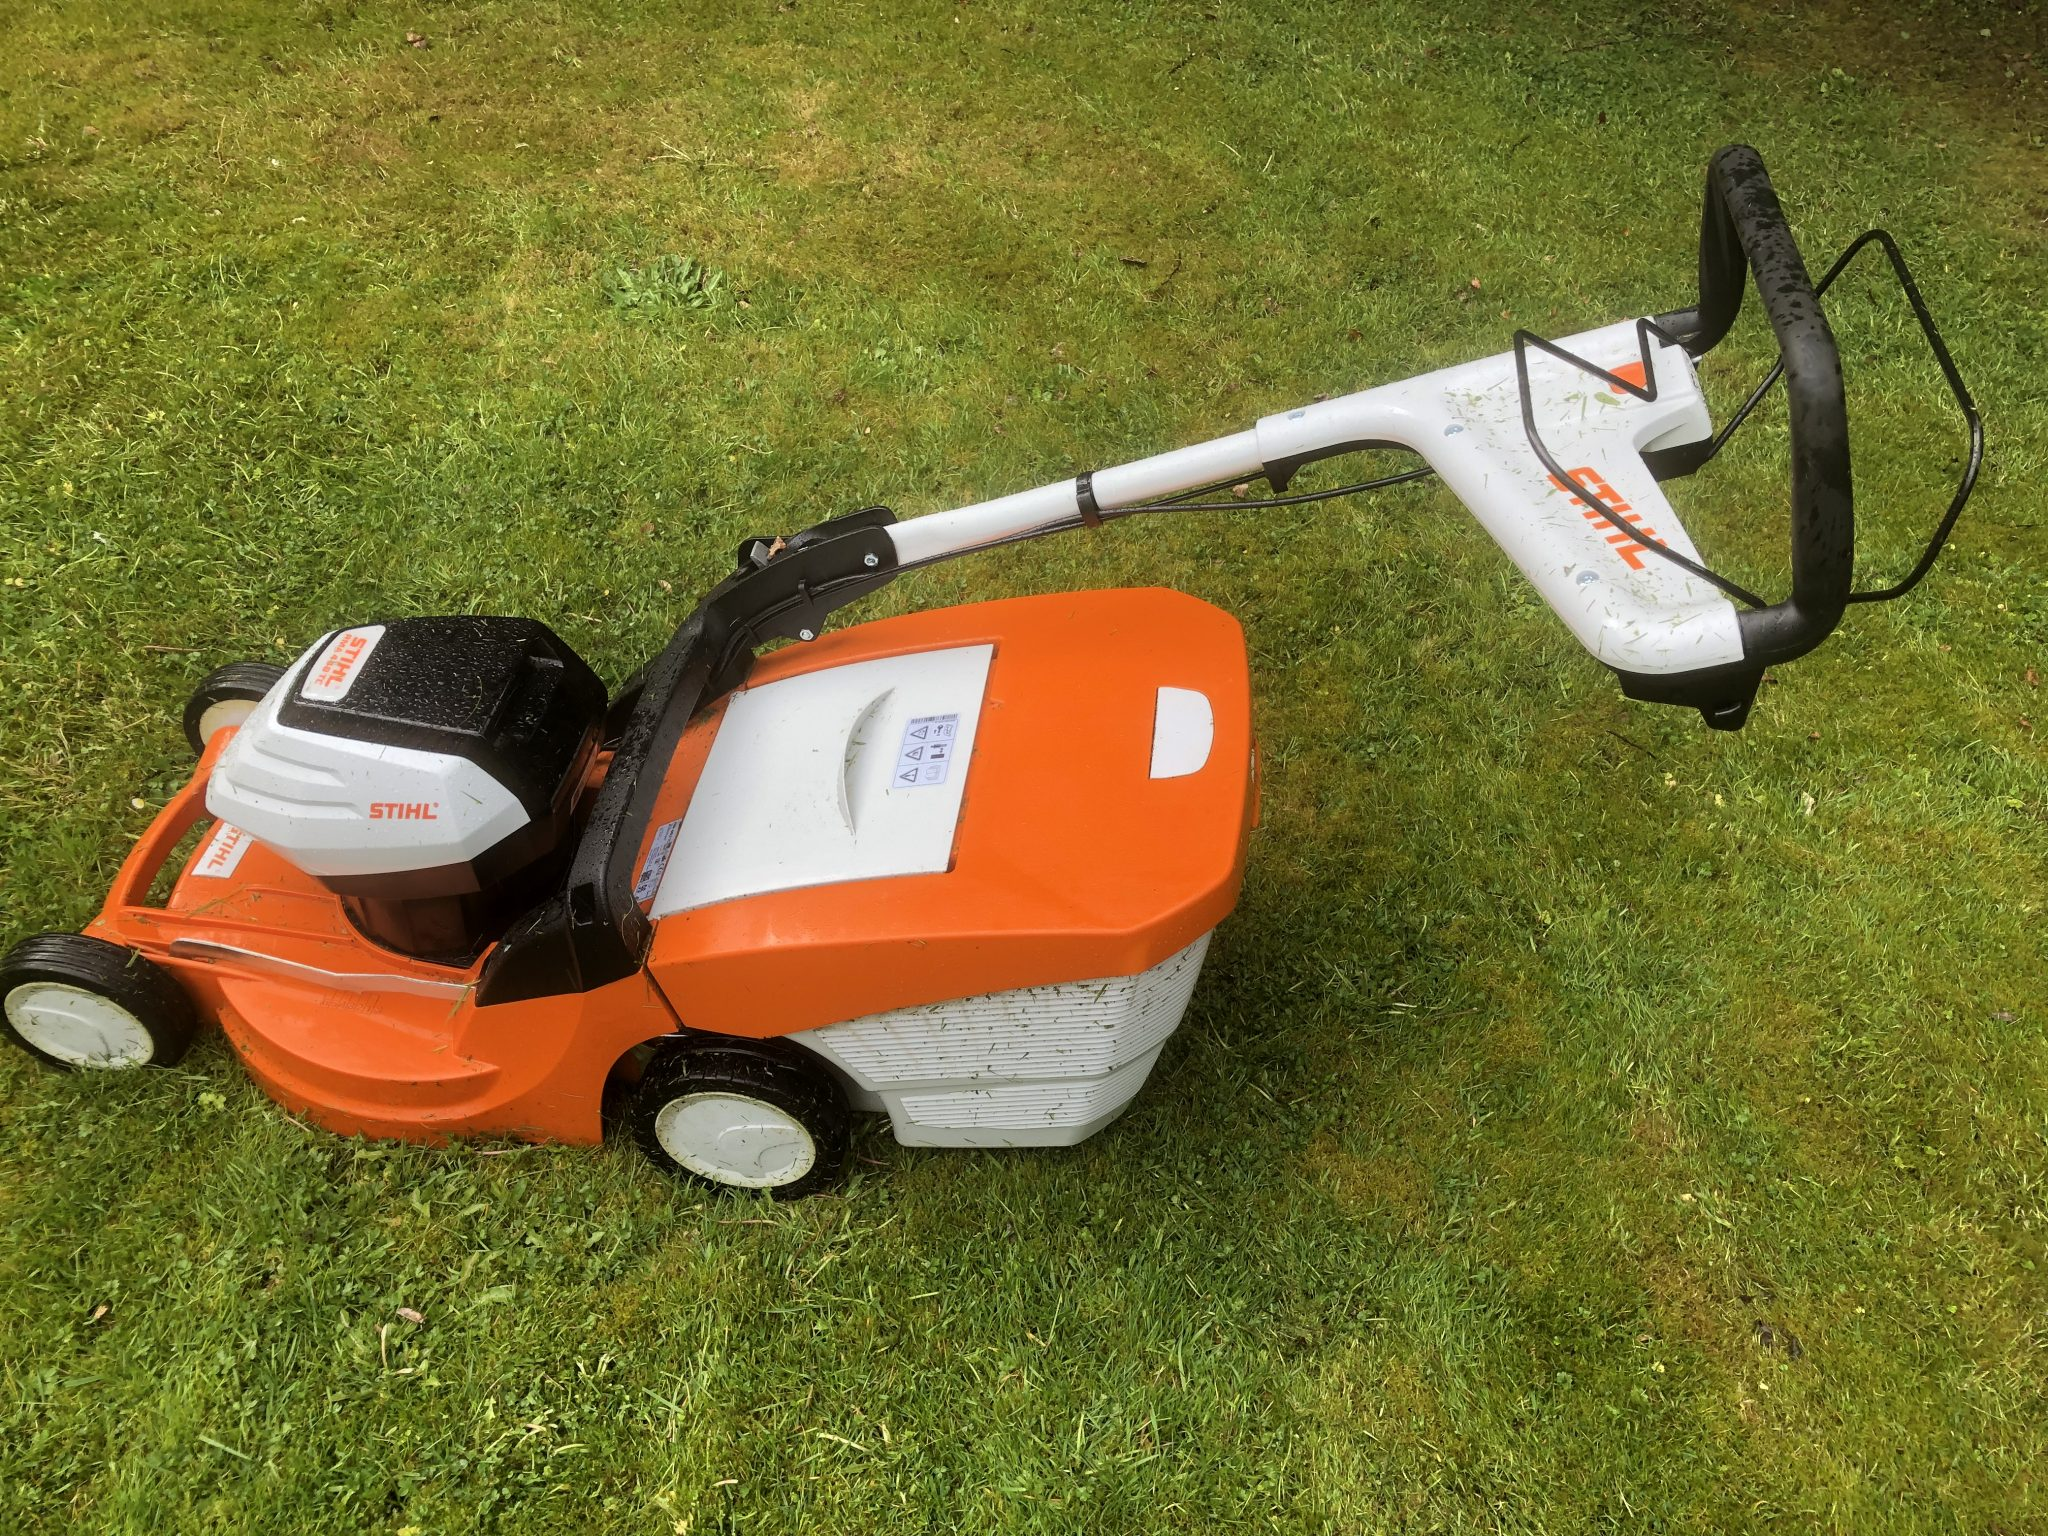 Stihl RMA 448 TC – battery mower review